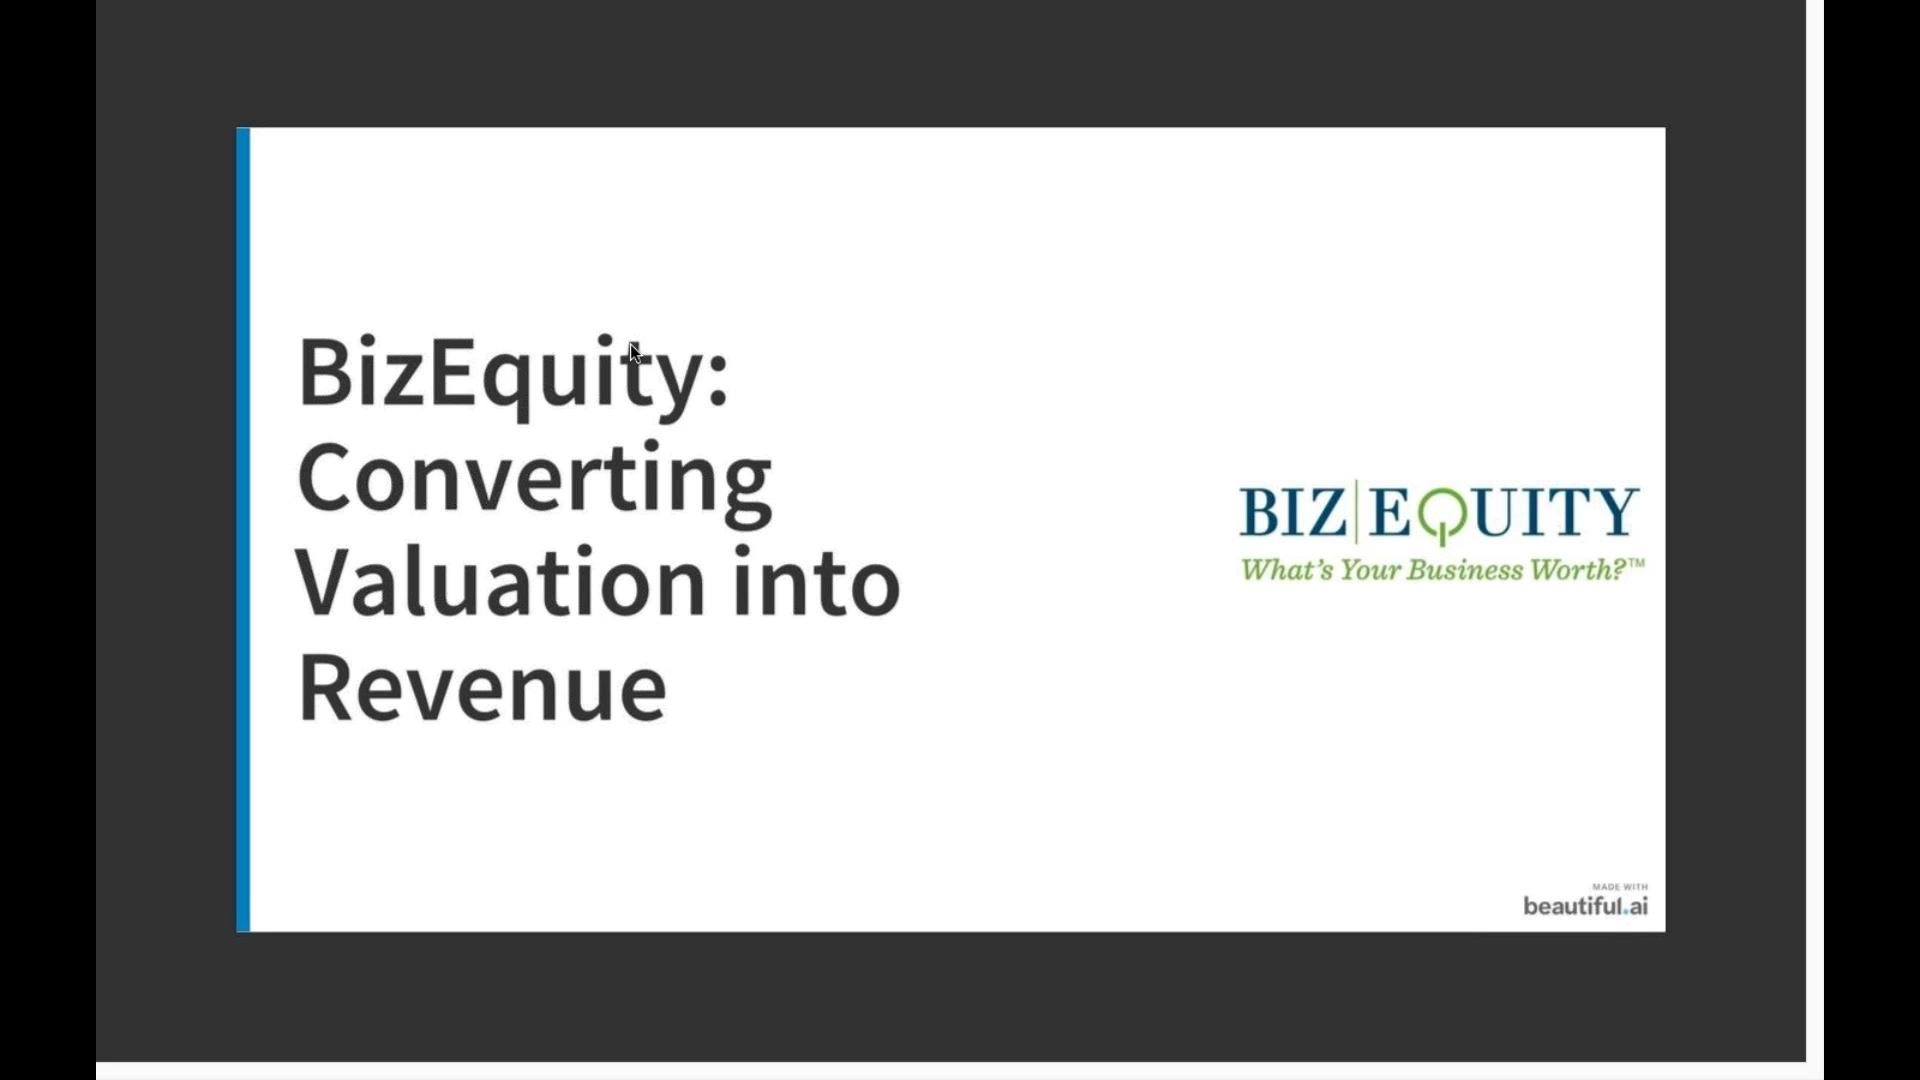 Q1. Best Practice Webinar - Converting Valuation into Revenue